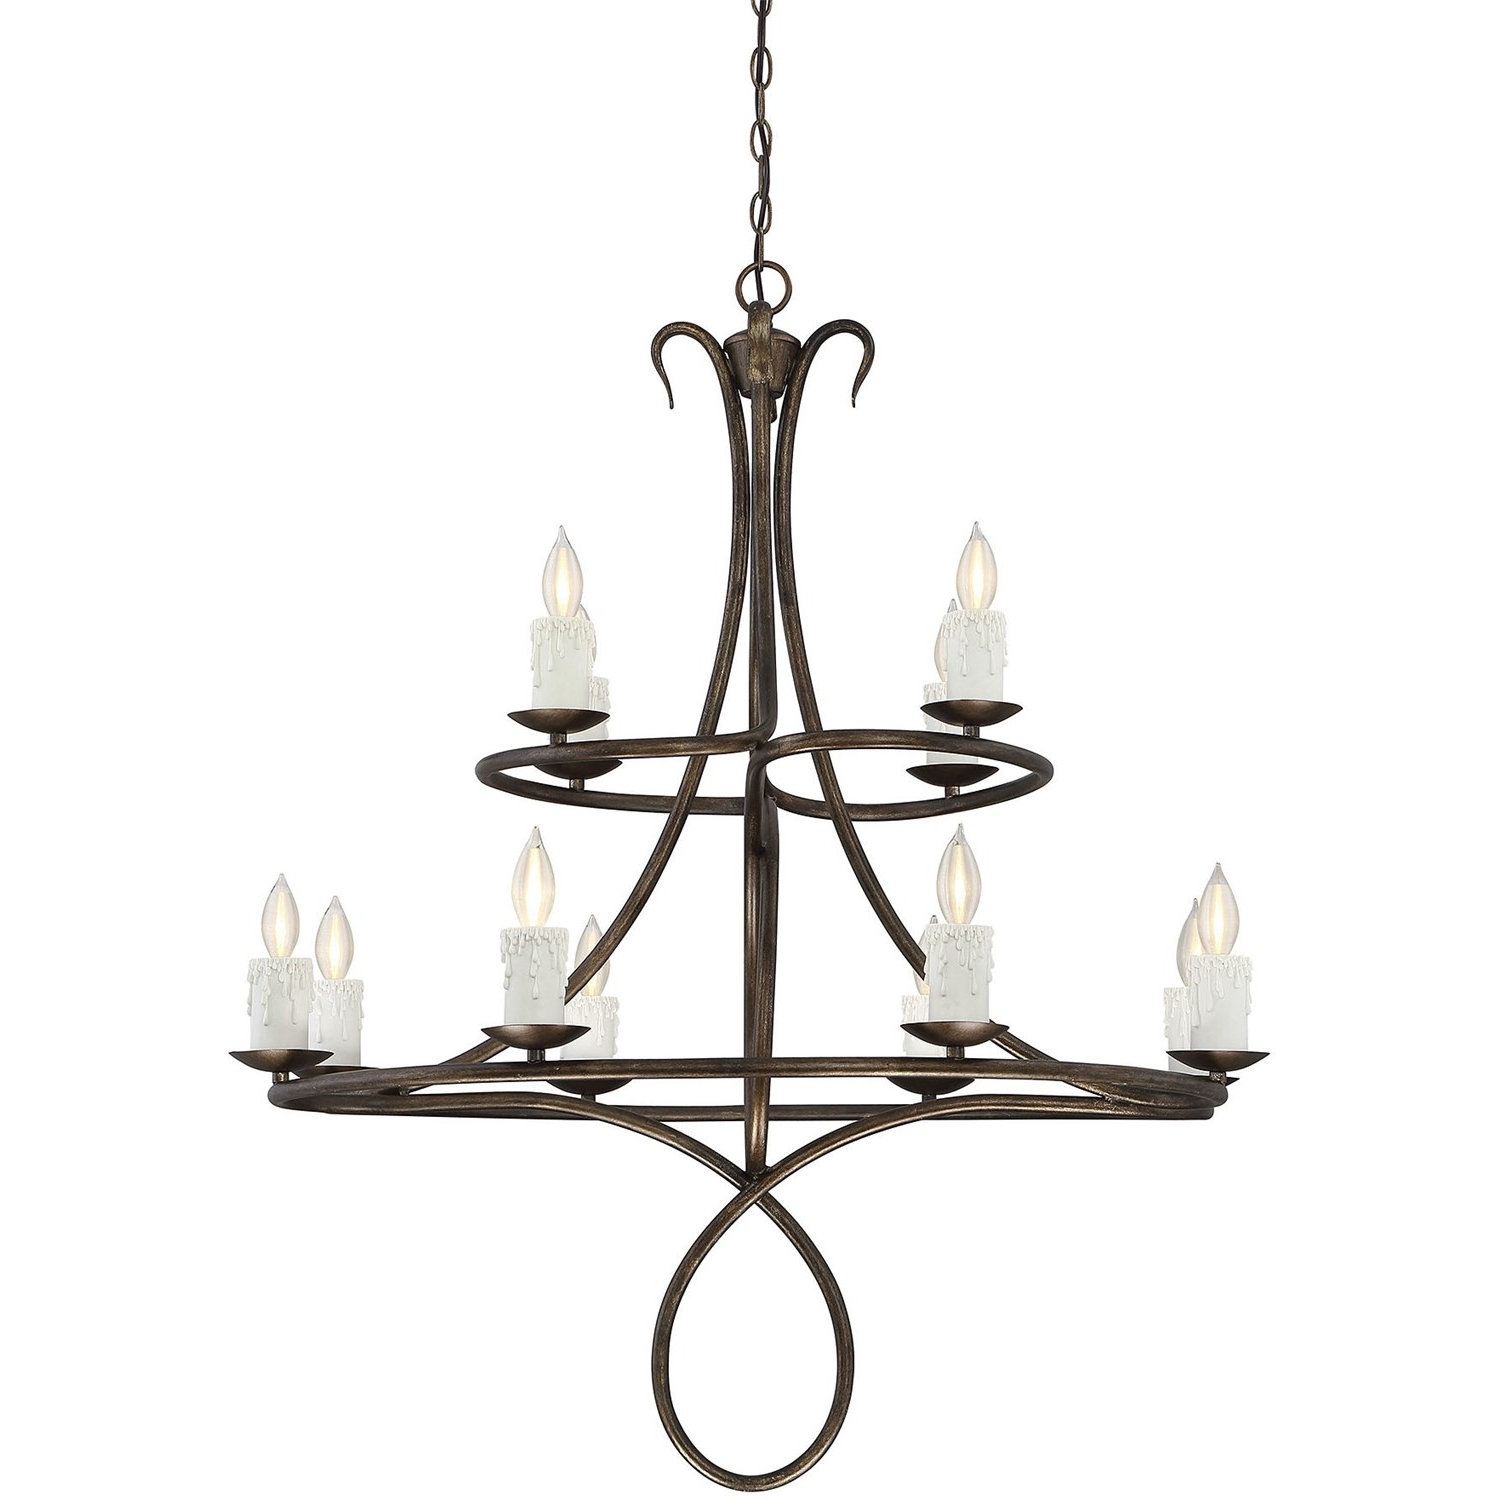 Most Popular Savoy House Chandeliers With Regard To Savoy House 1 171 12 131 Lynch 12 Light Chandelier In Guilded Bronze (View 4 of 20)